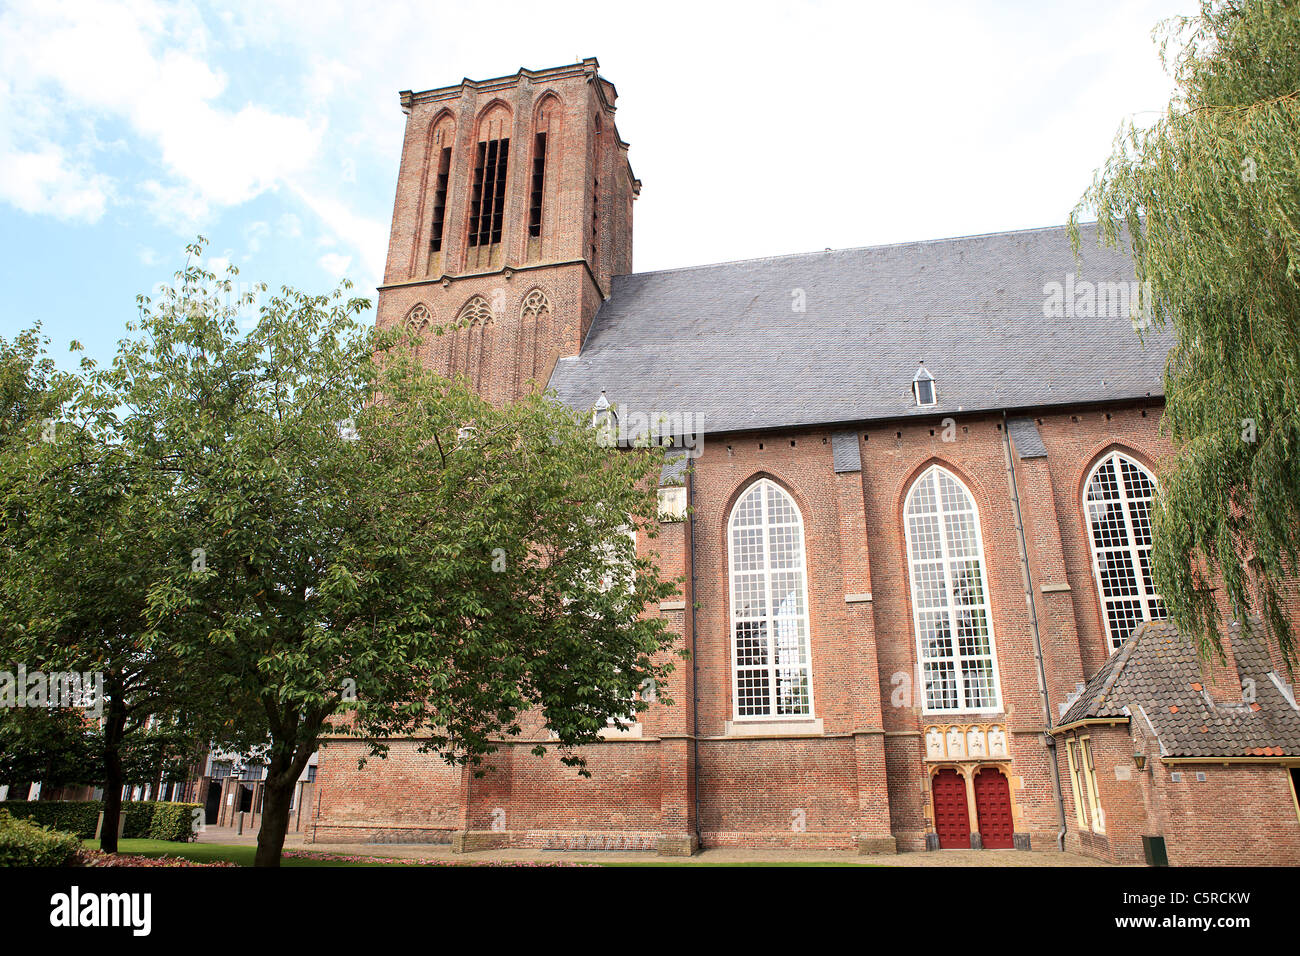 Church of Elburg in the Netherlands - Stock Image